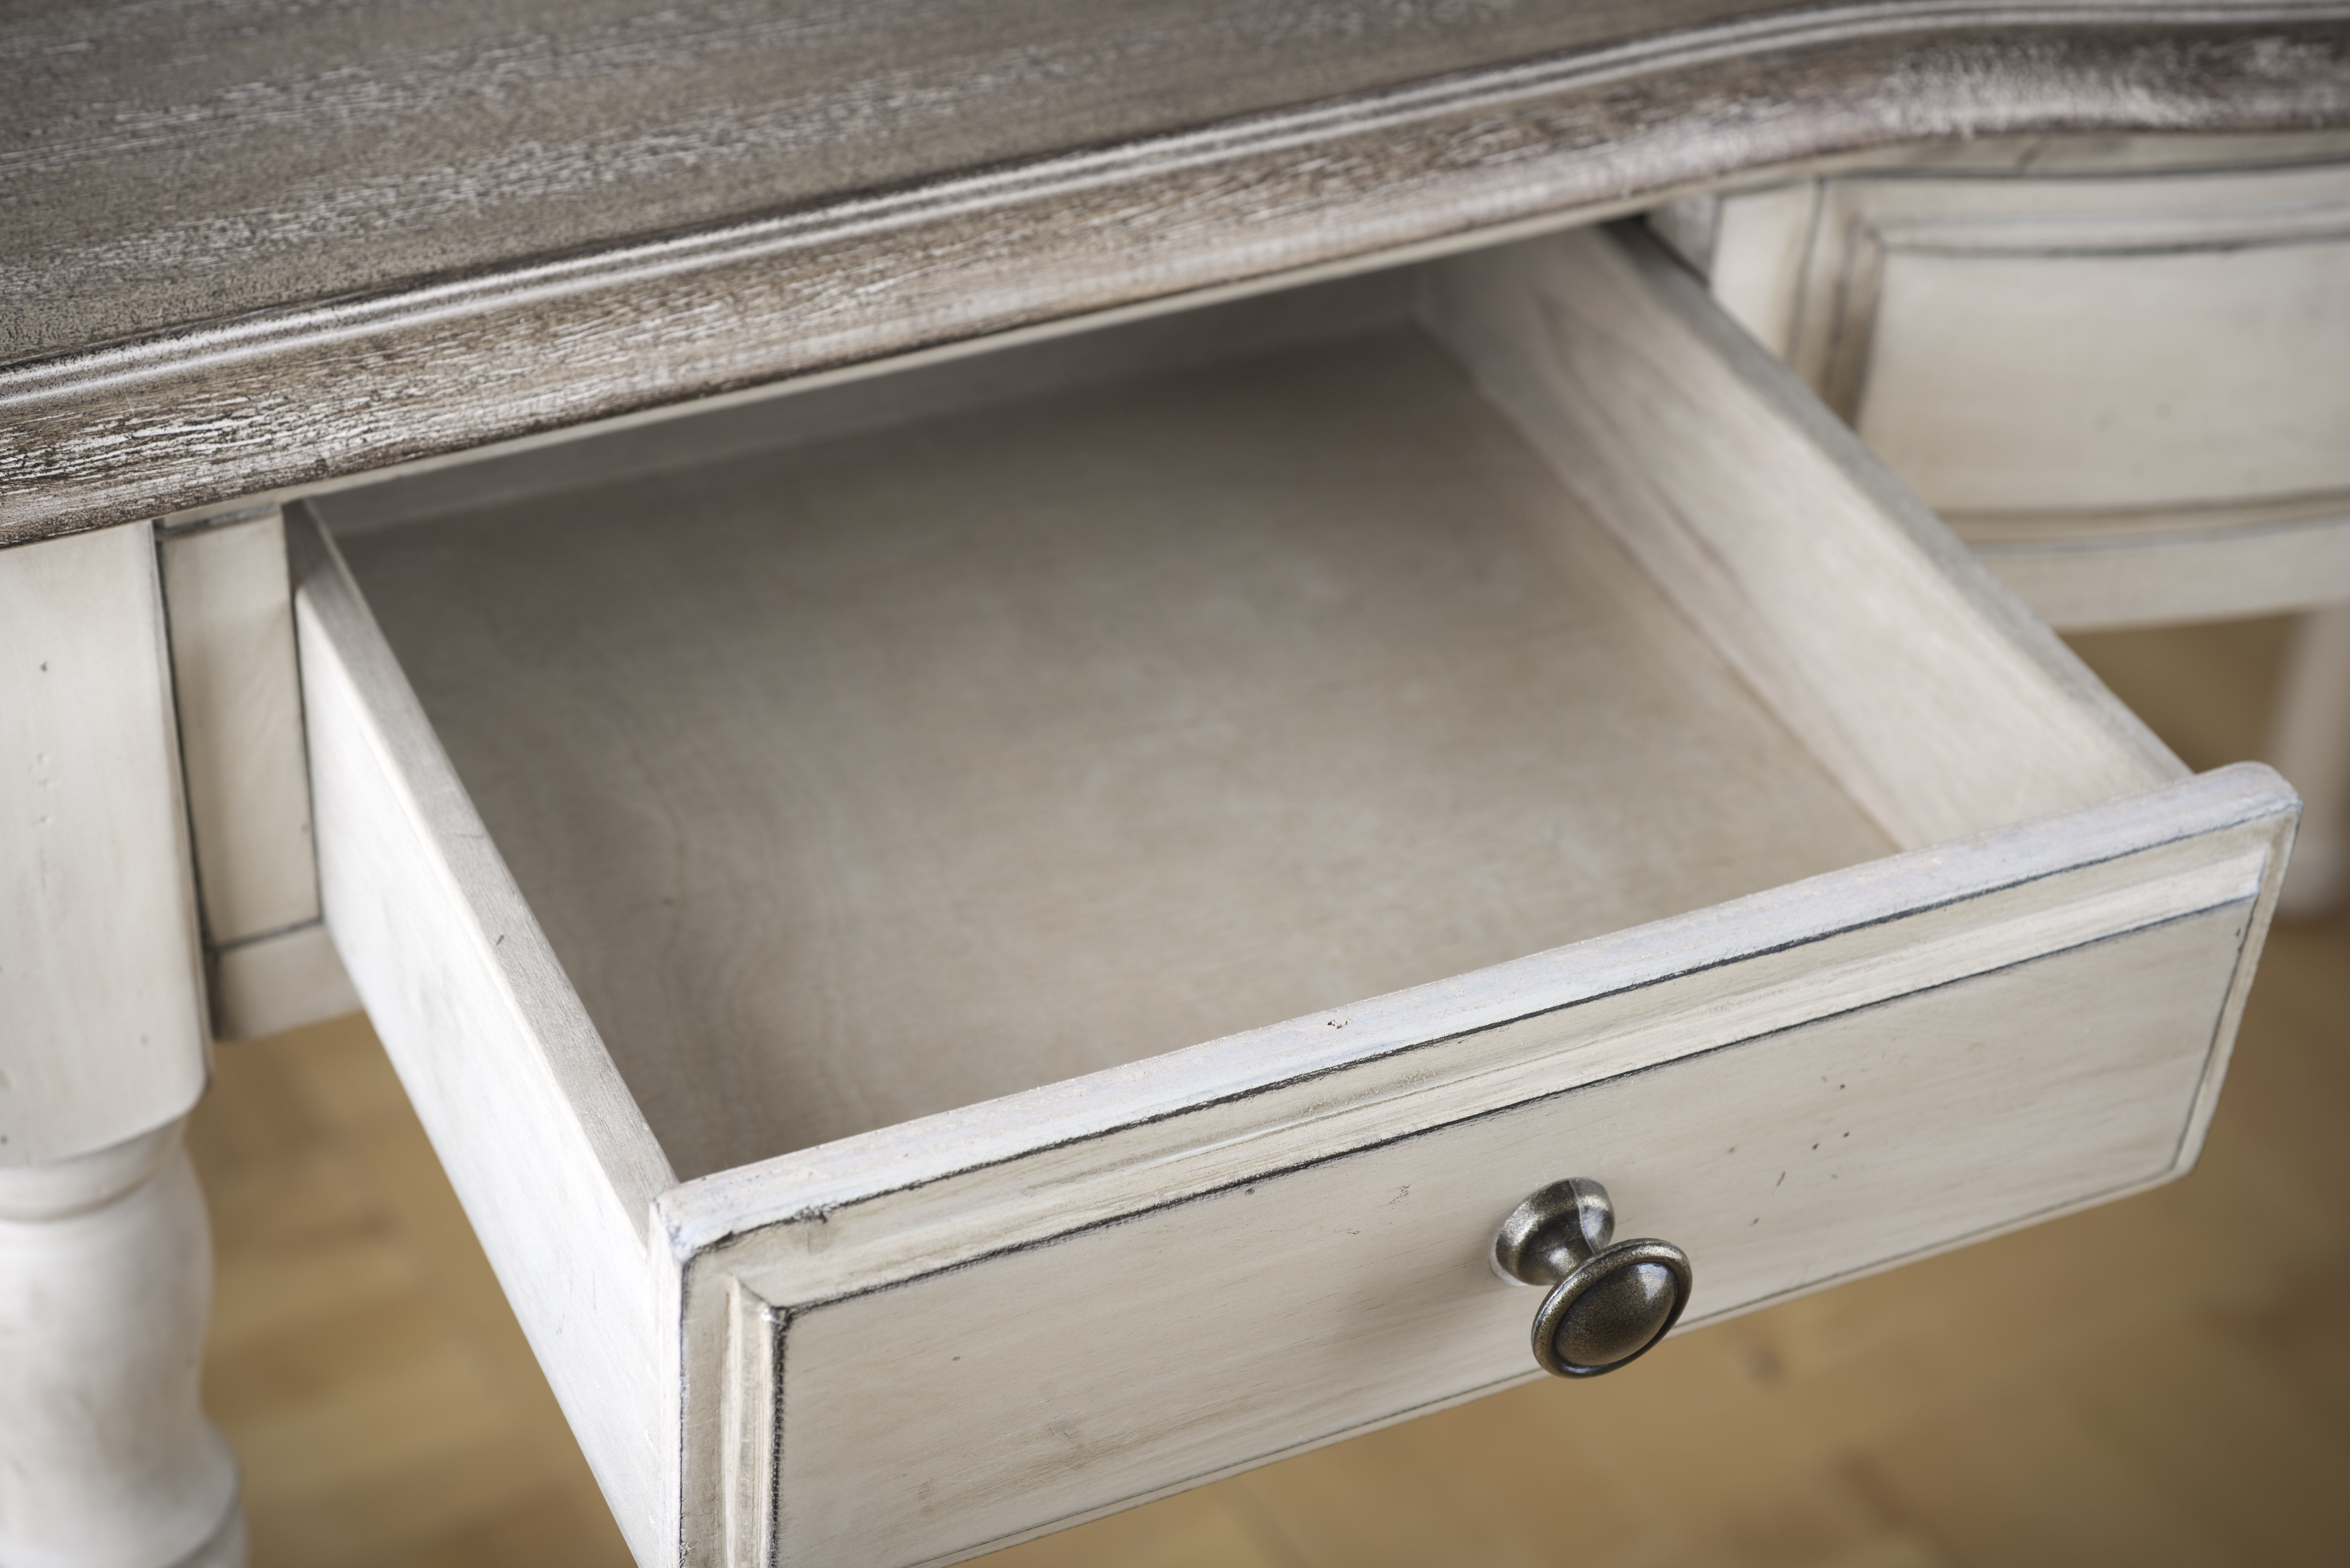 How to Repair a Drawer Track and Slides | Hunker